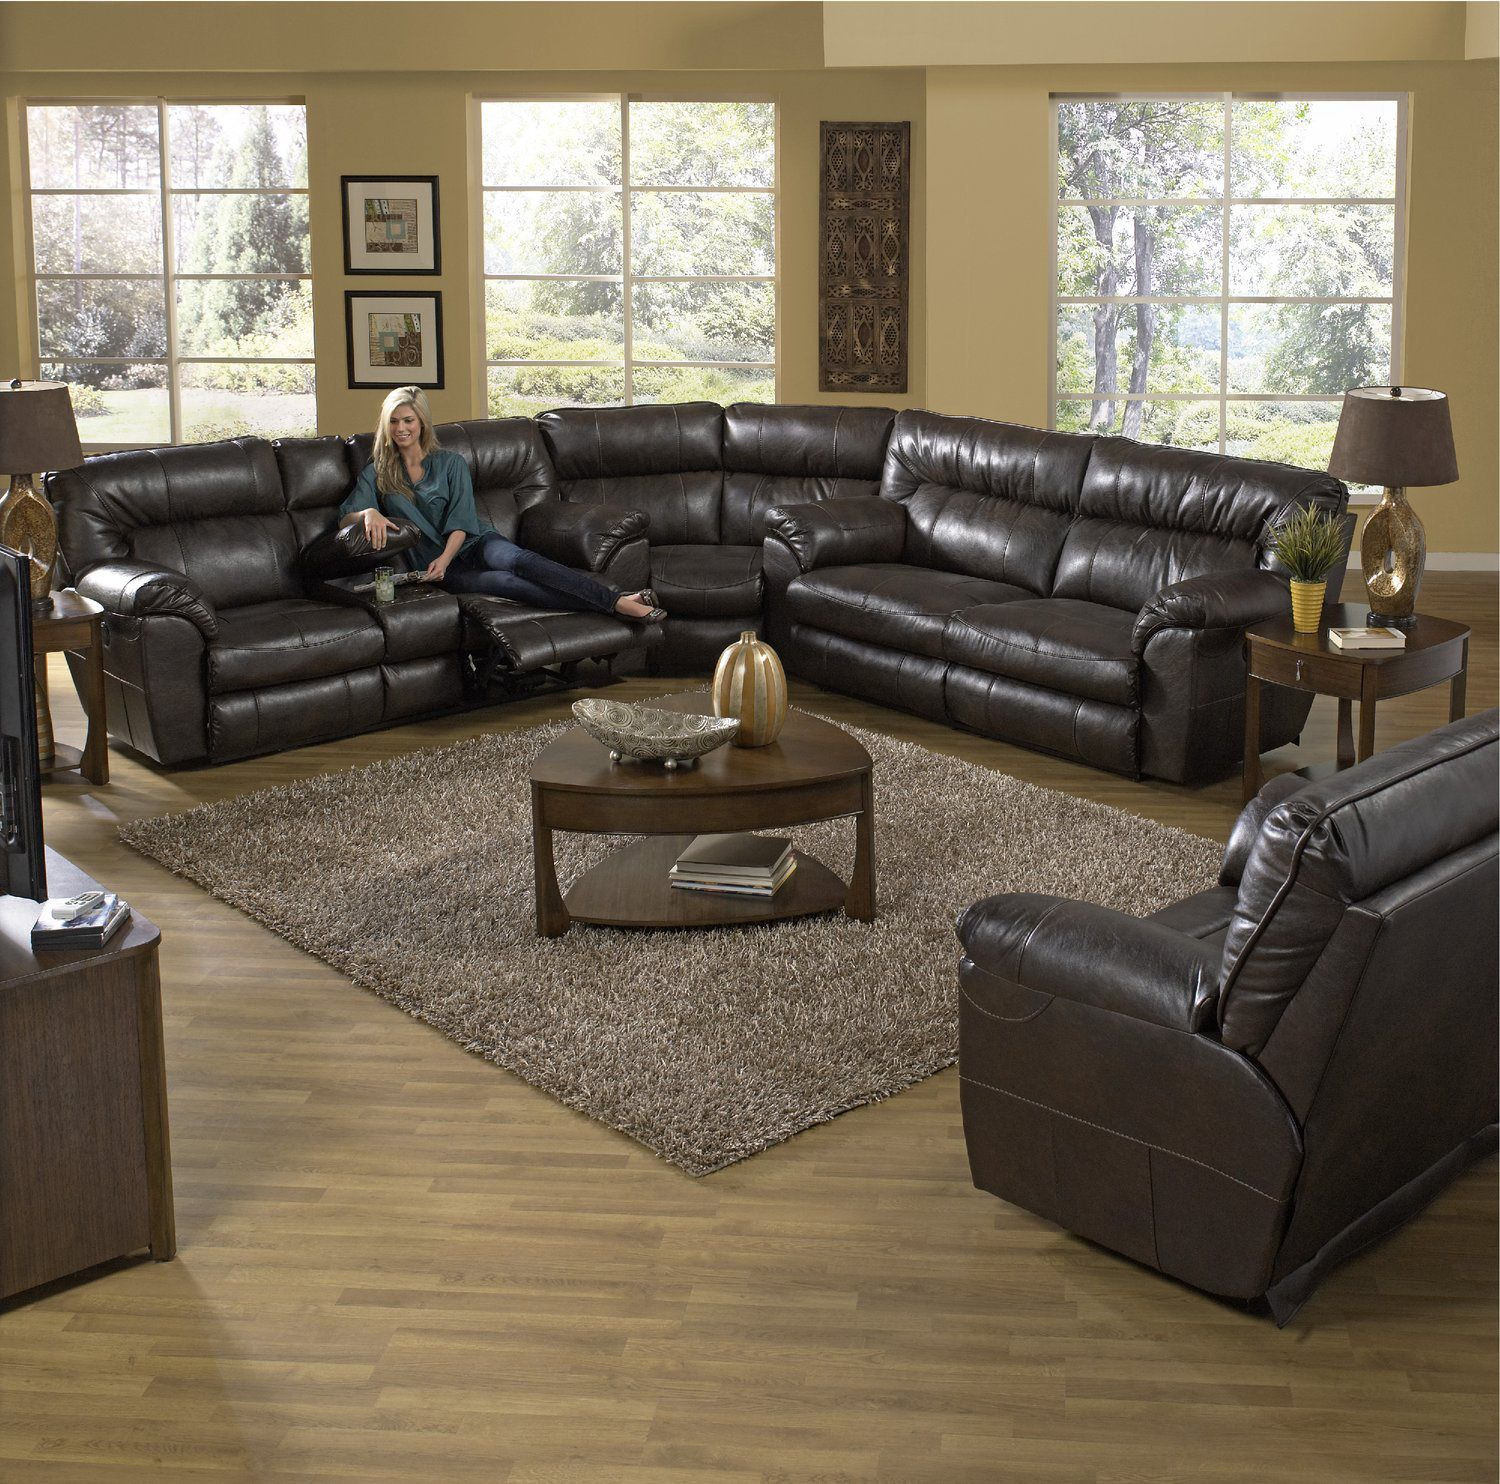 Ryan 3 Piece Reclining Sectional Living room ideas